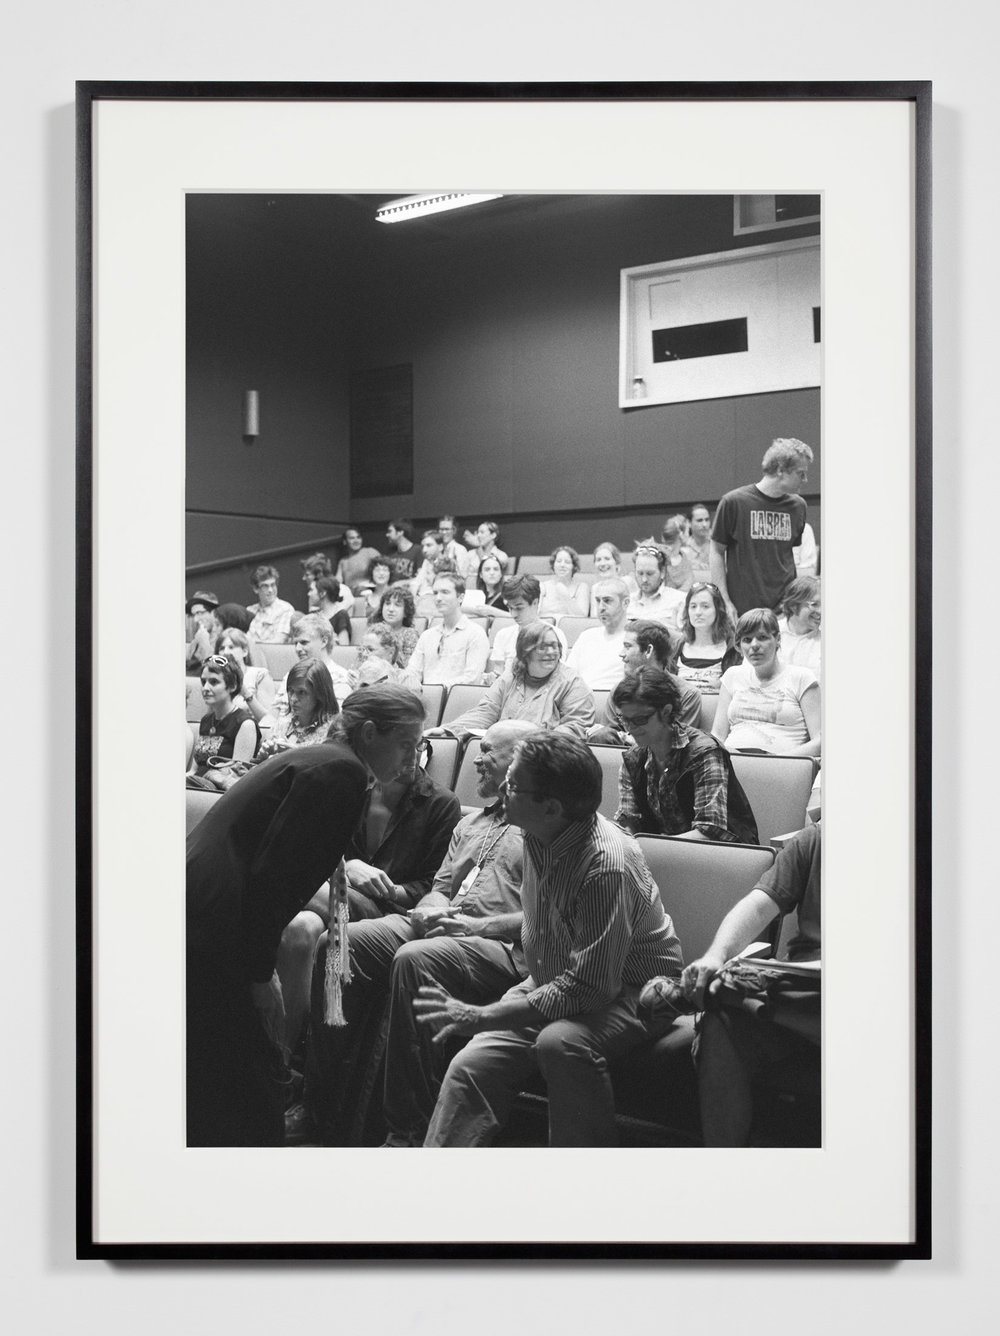 College Lecture Hall, Annandale-on-Hudson, New York, July 11, 2009    2011   Epson Ultrachrome K3 archival ink jet print on Hahnemühle Photo Rag paper  36 3/8 x 26 3/8 inches   A Diagram of Forces, 2011